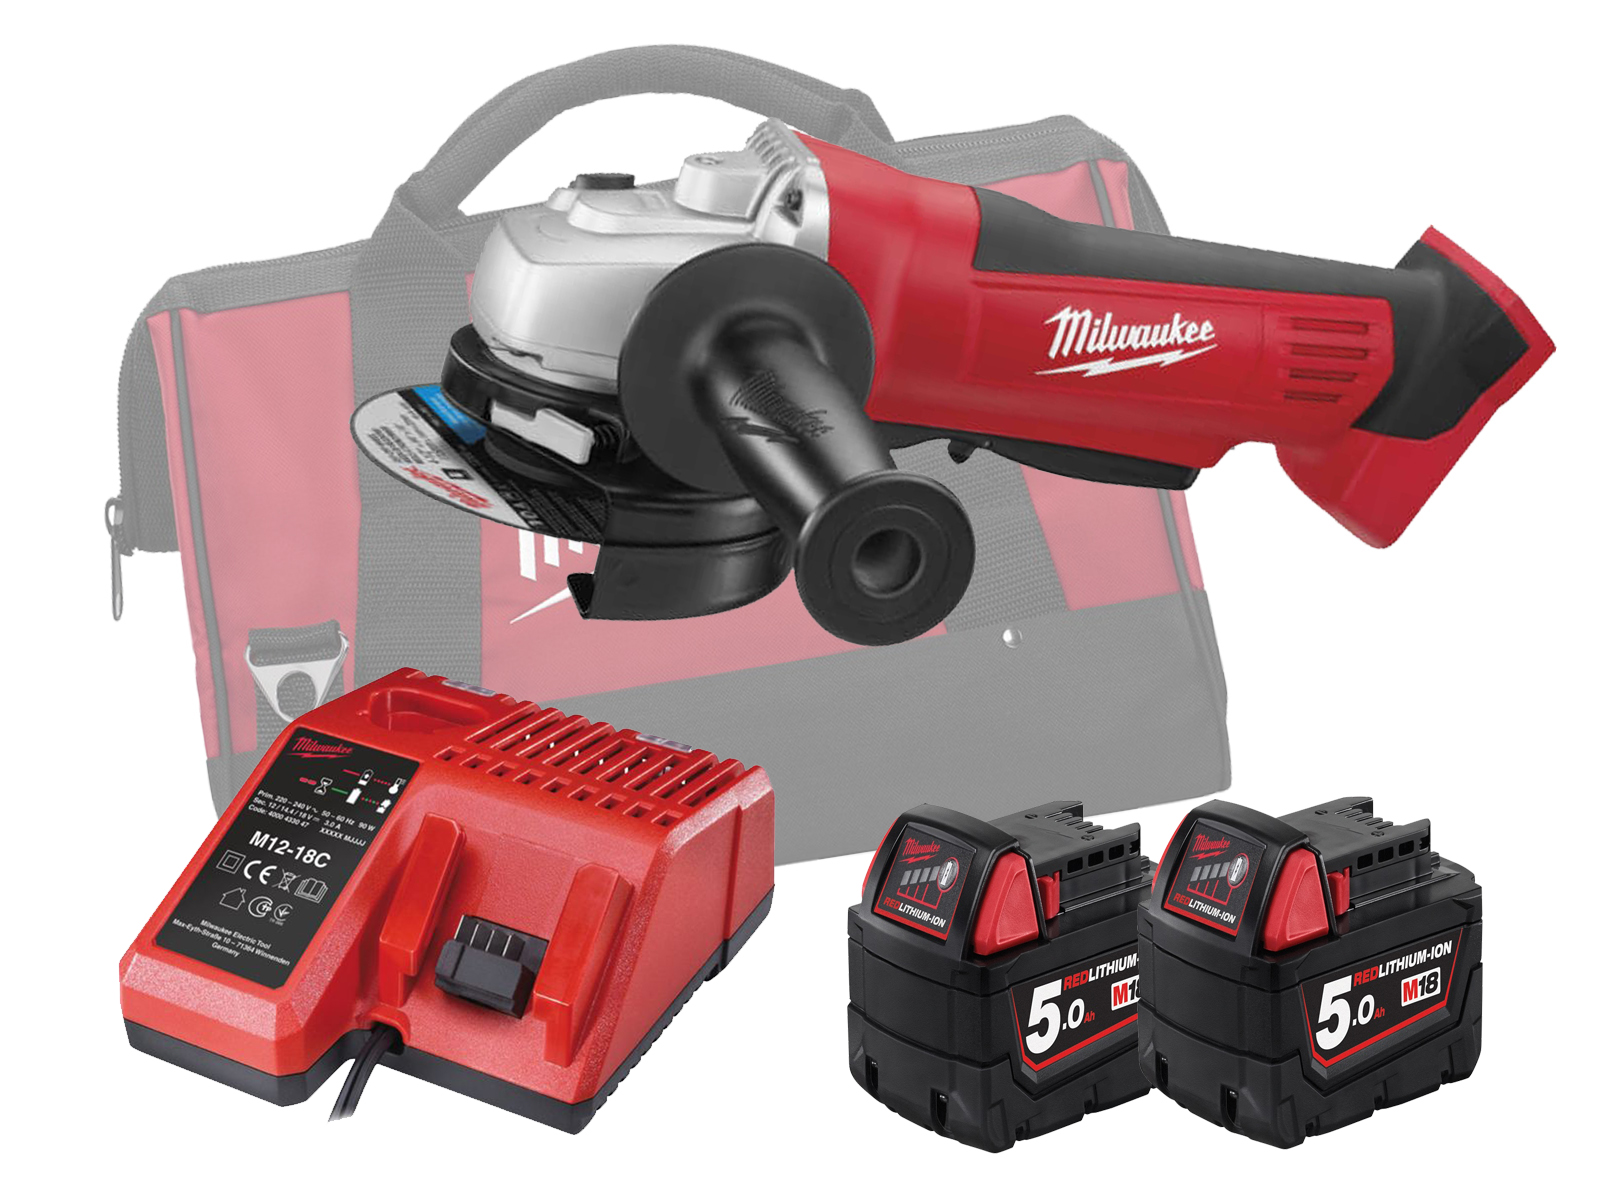 Milwaukee HD18AG-115 18V 115mm Angle Grinder With Paddle Switch - 5.0Ah Pack